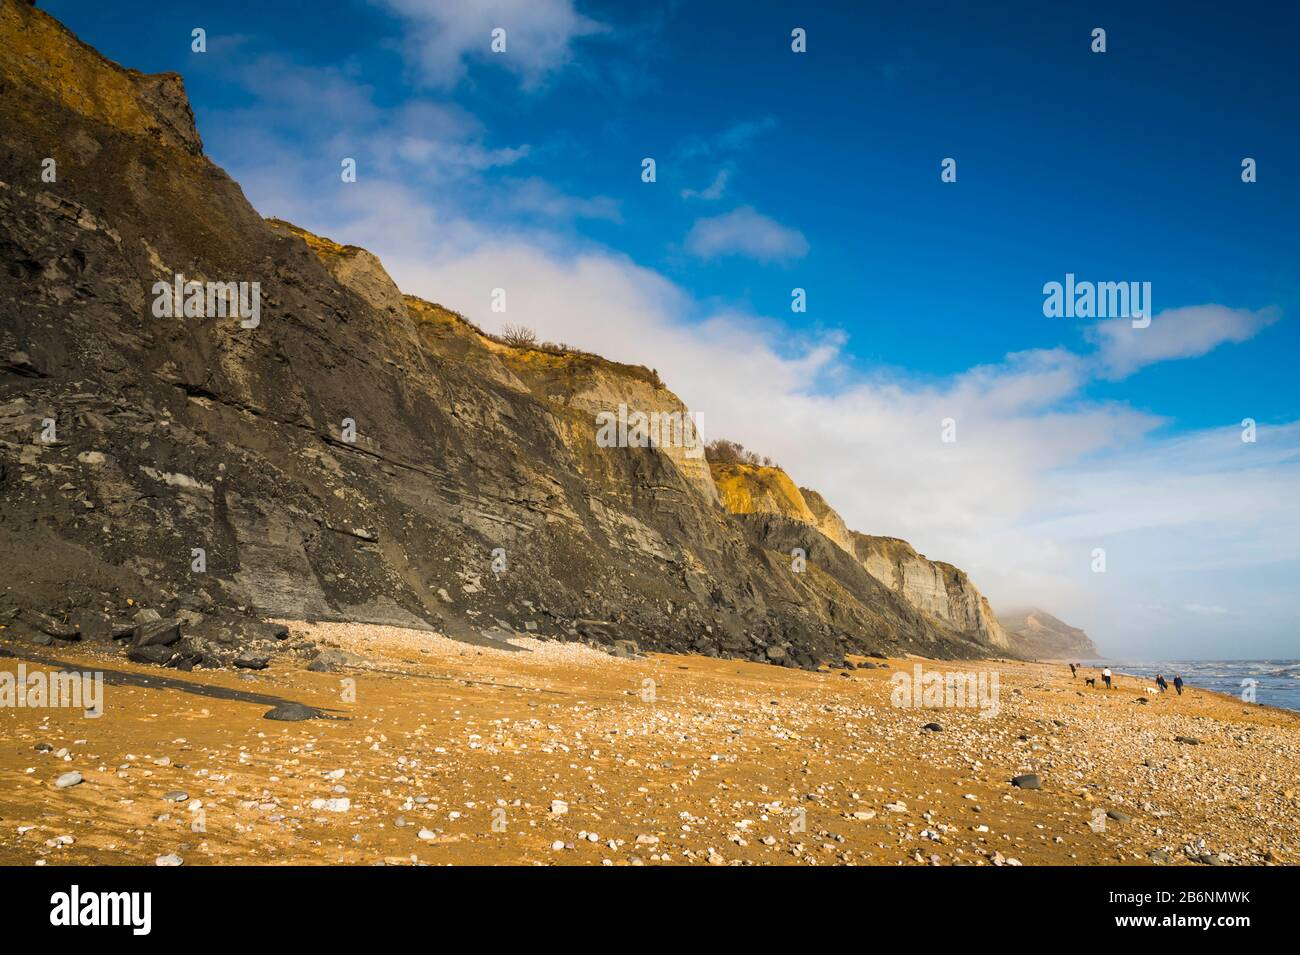 Charmouth, Dorset, UK.  11th March 2020.  UK Weather.  Glorious spring sunshine at Charmouth beach in Dorset looking East towards Golden Cap with the fossil rich cliffs of Stonebarrow showing many landslips from the recent wet stormy weather.  Picture Credit: Graham Hunt/Alamy Live News Stock Photo